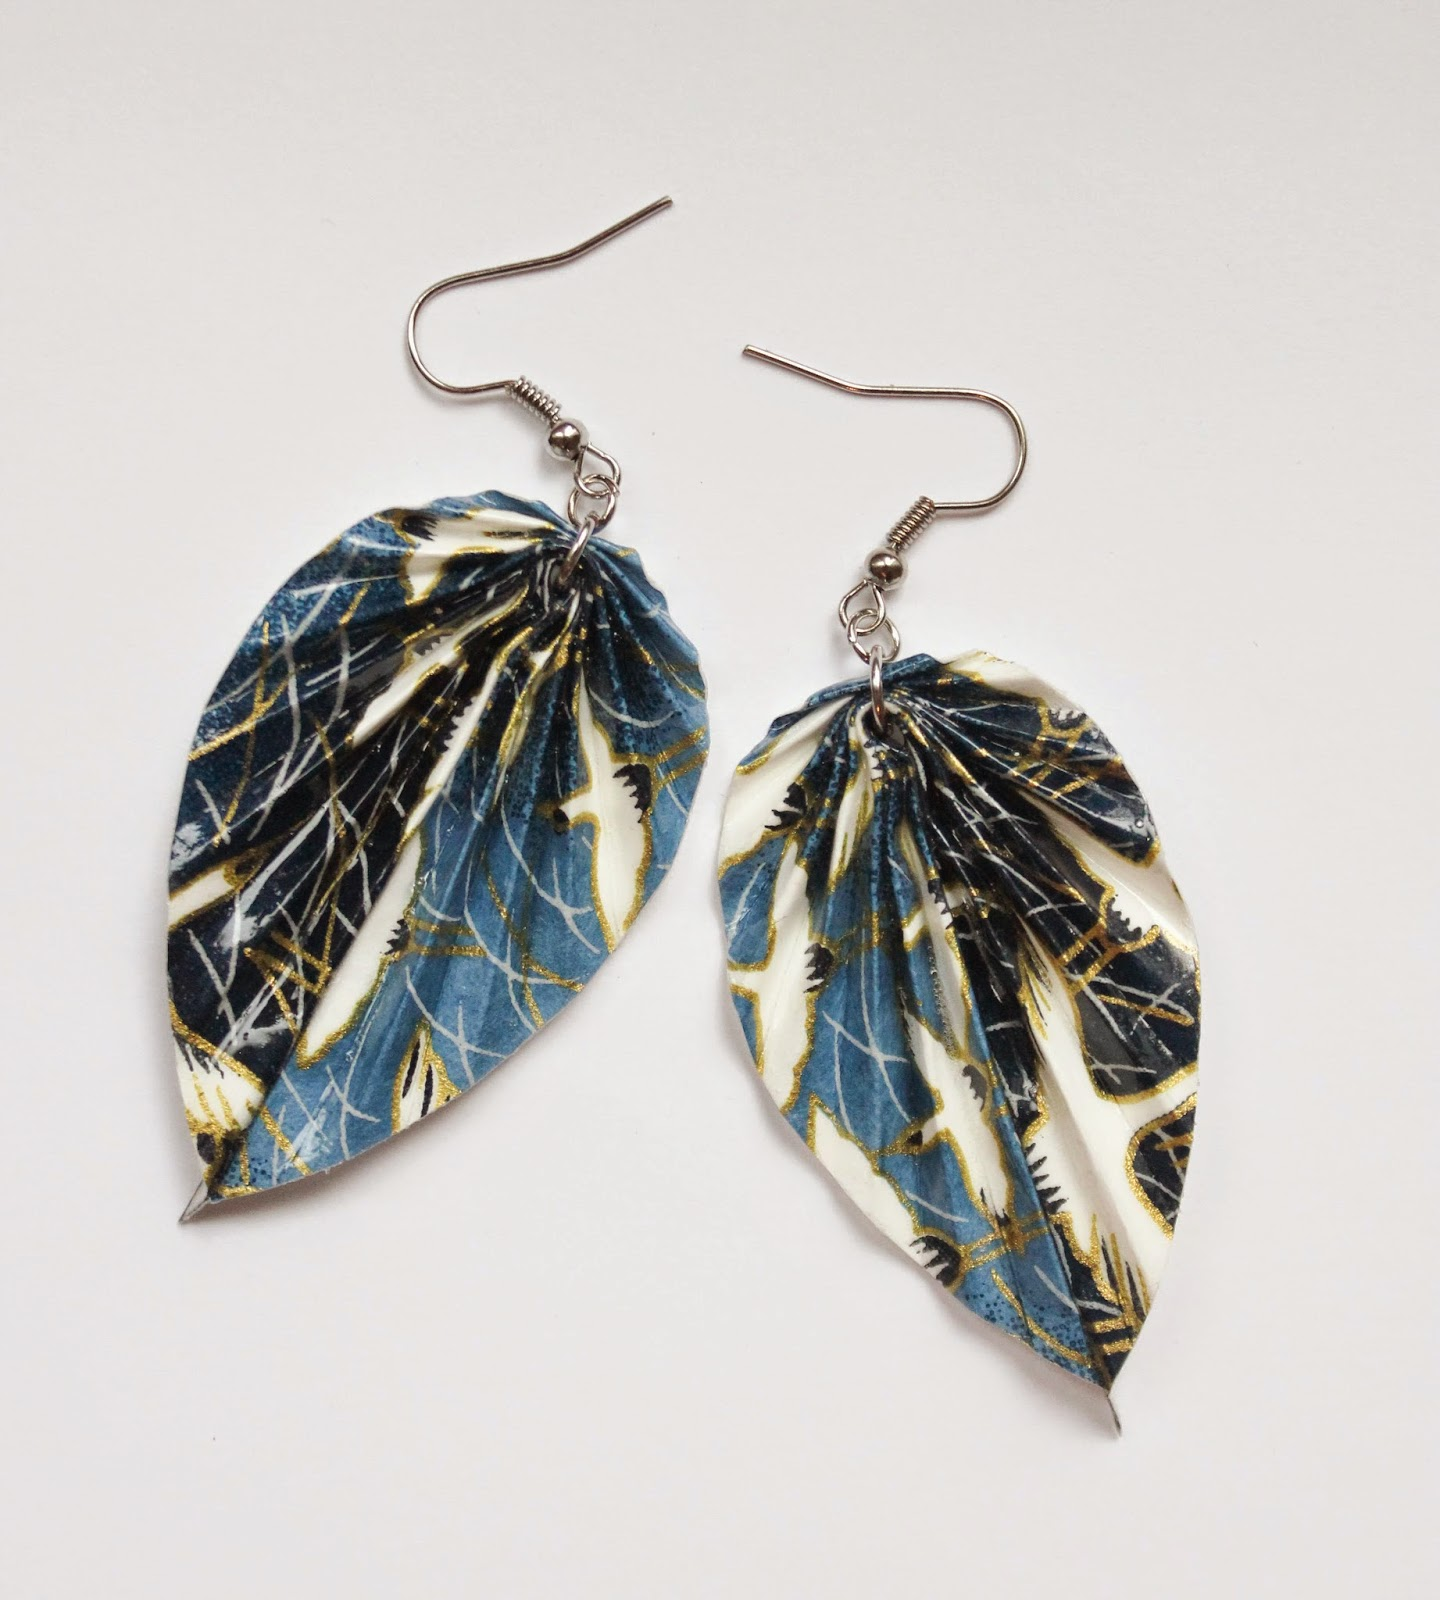 pearl earrings and jewelry vogue origami jewelry and